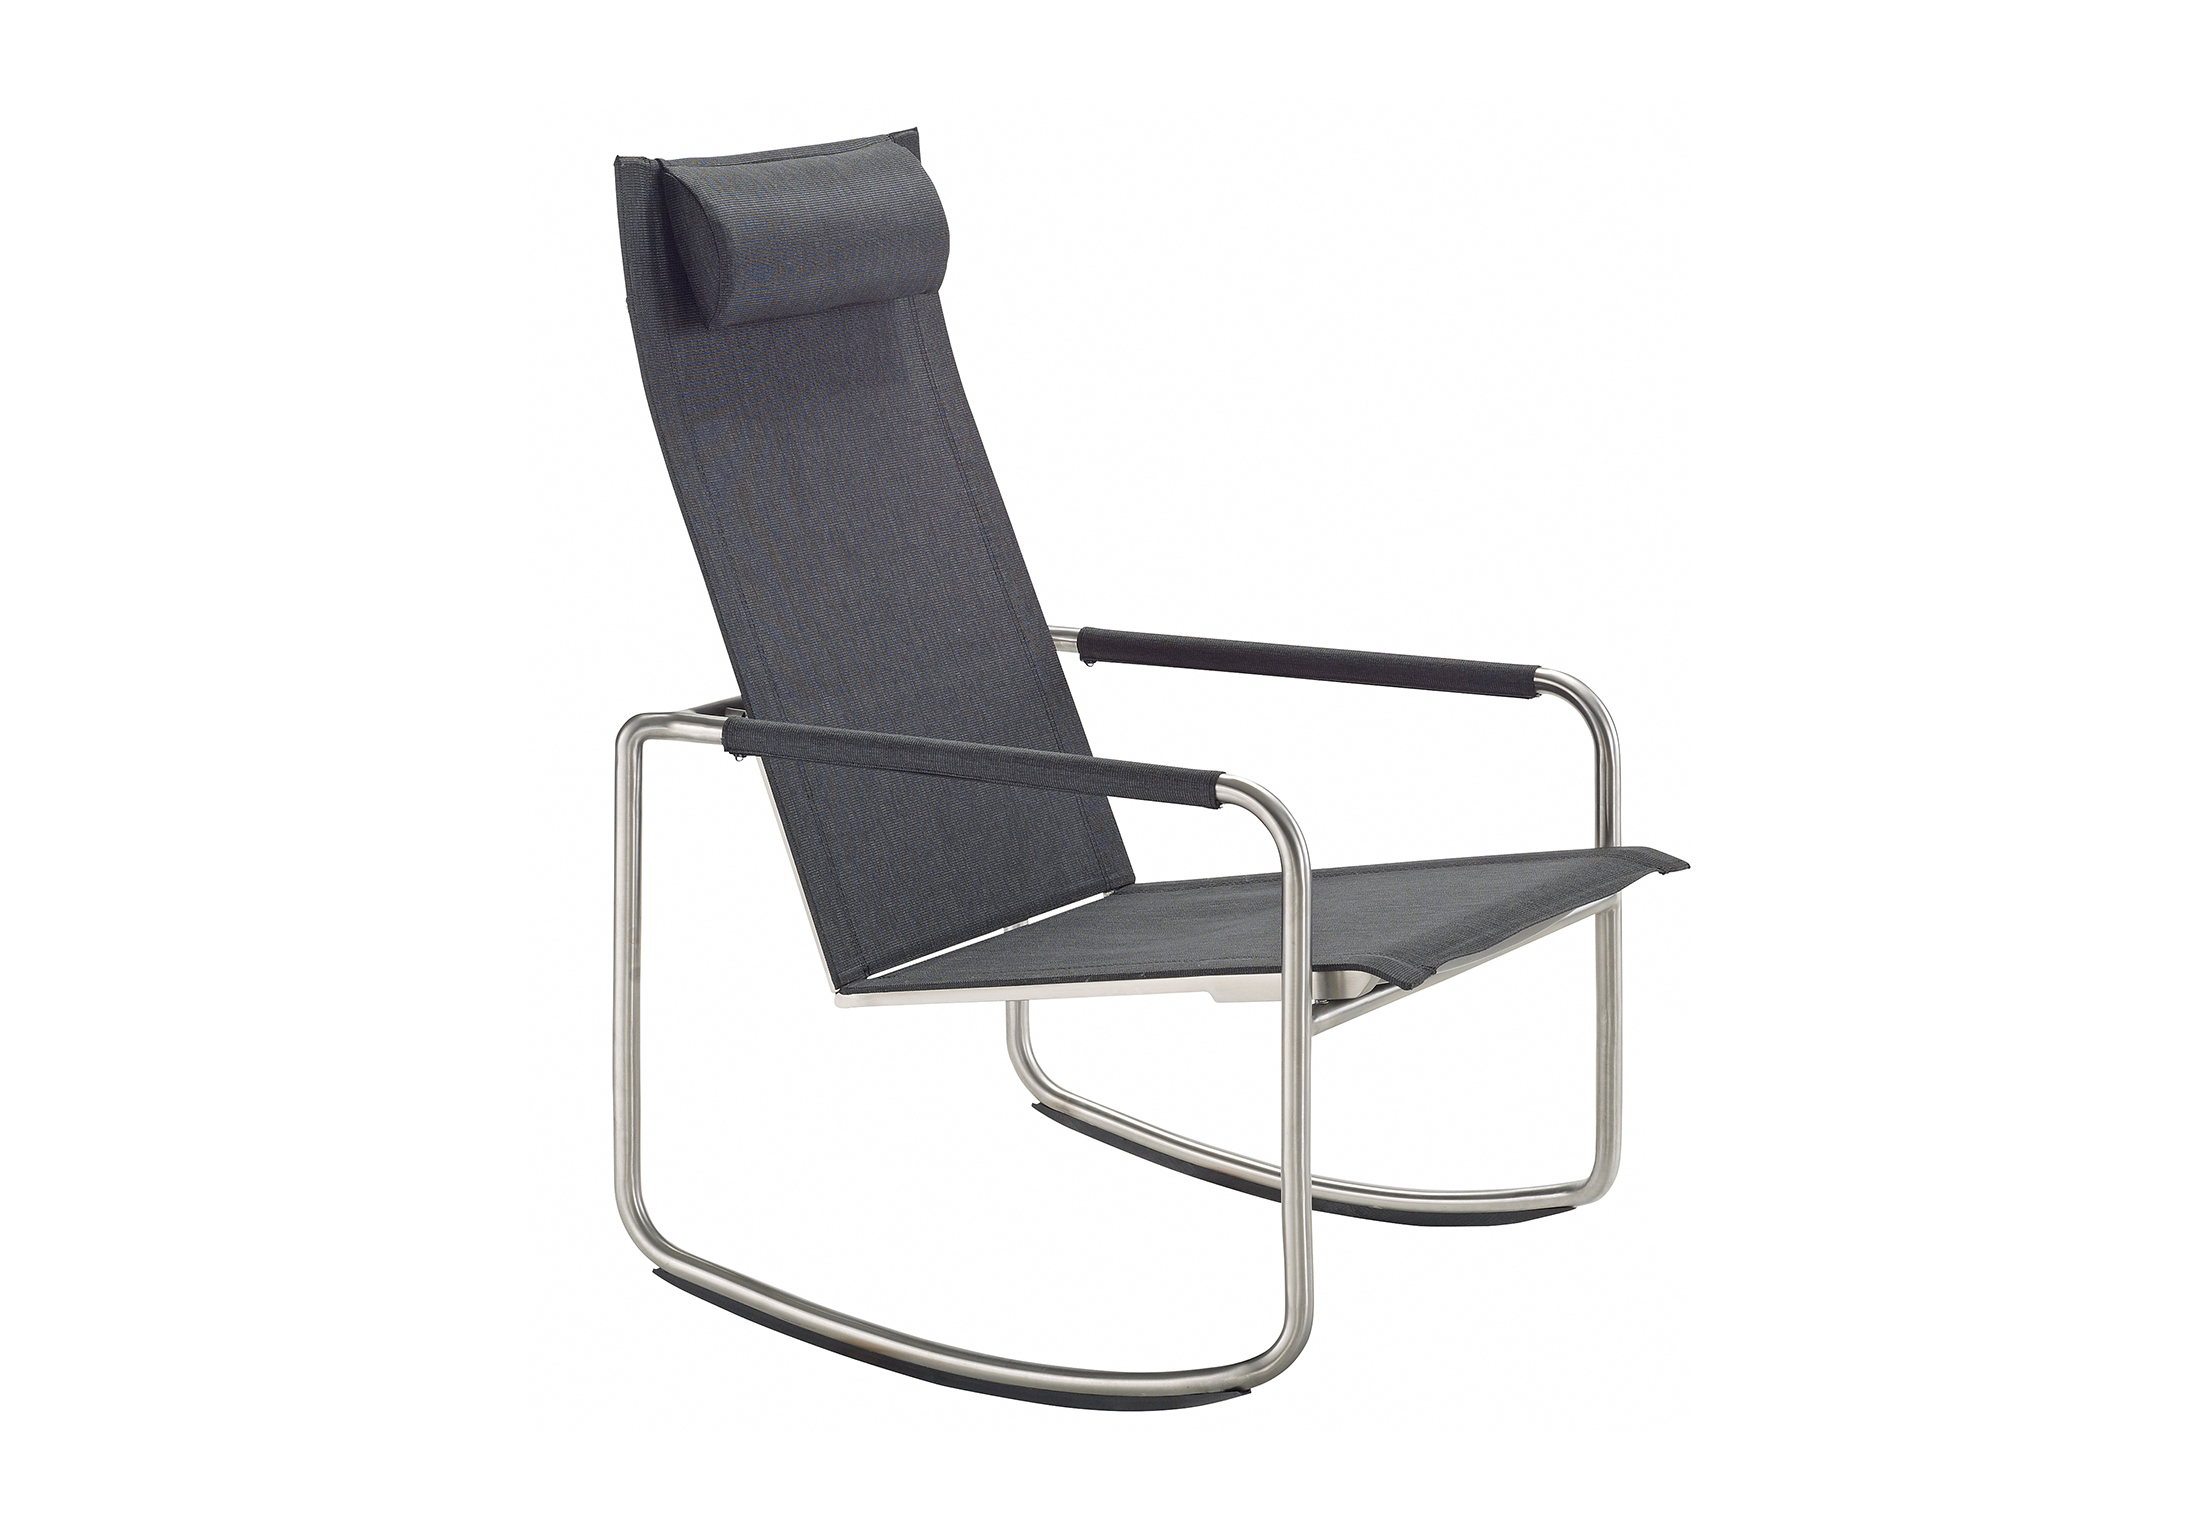 Jardin Rocking Deck Chair By Solpuri | Stylepark dedans Rocking Chair Jardin